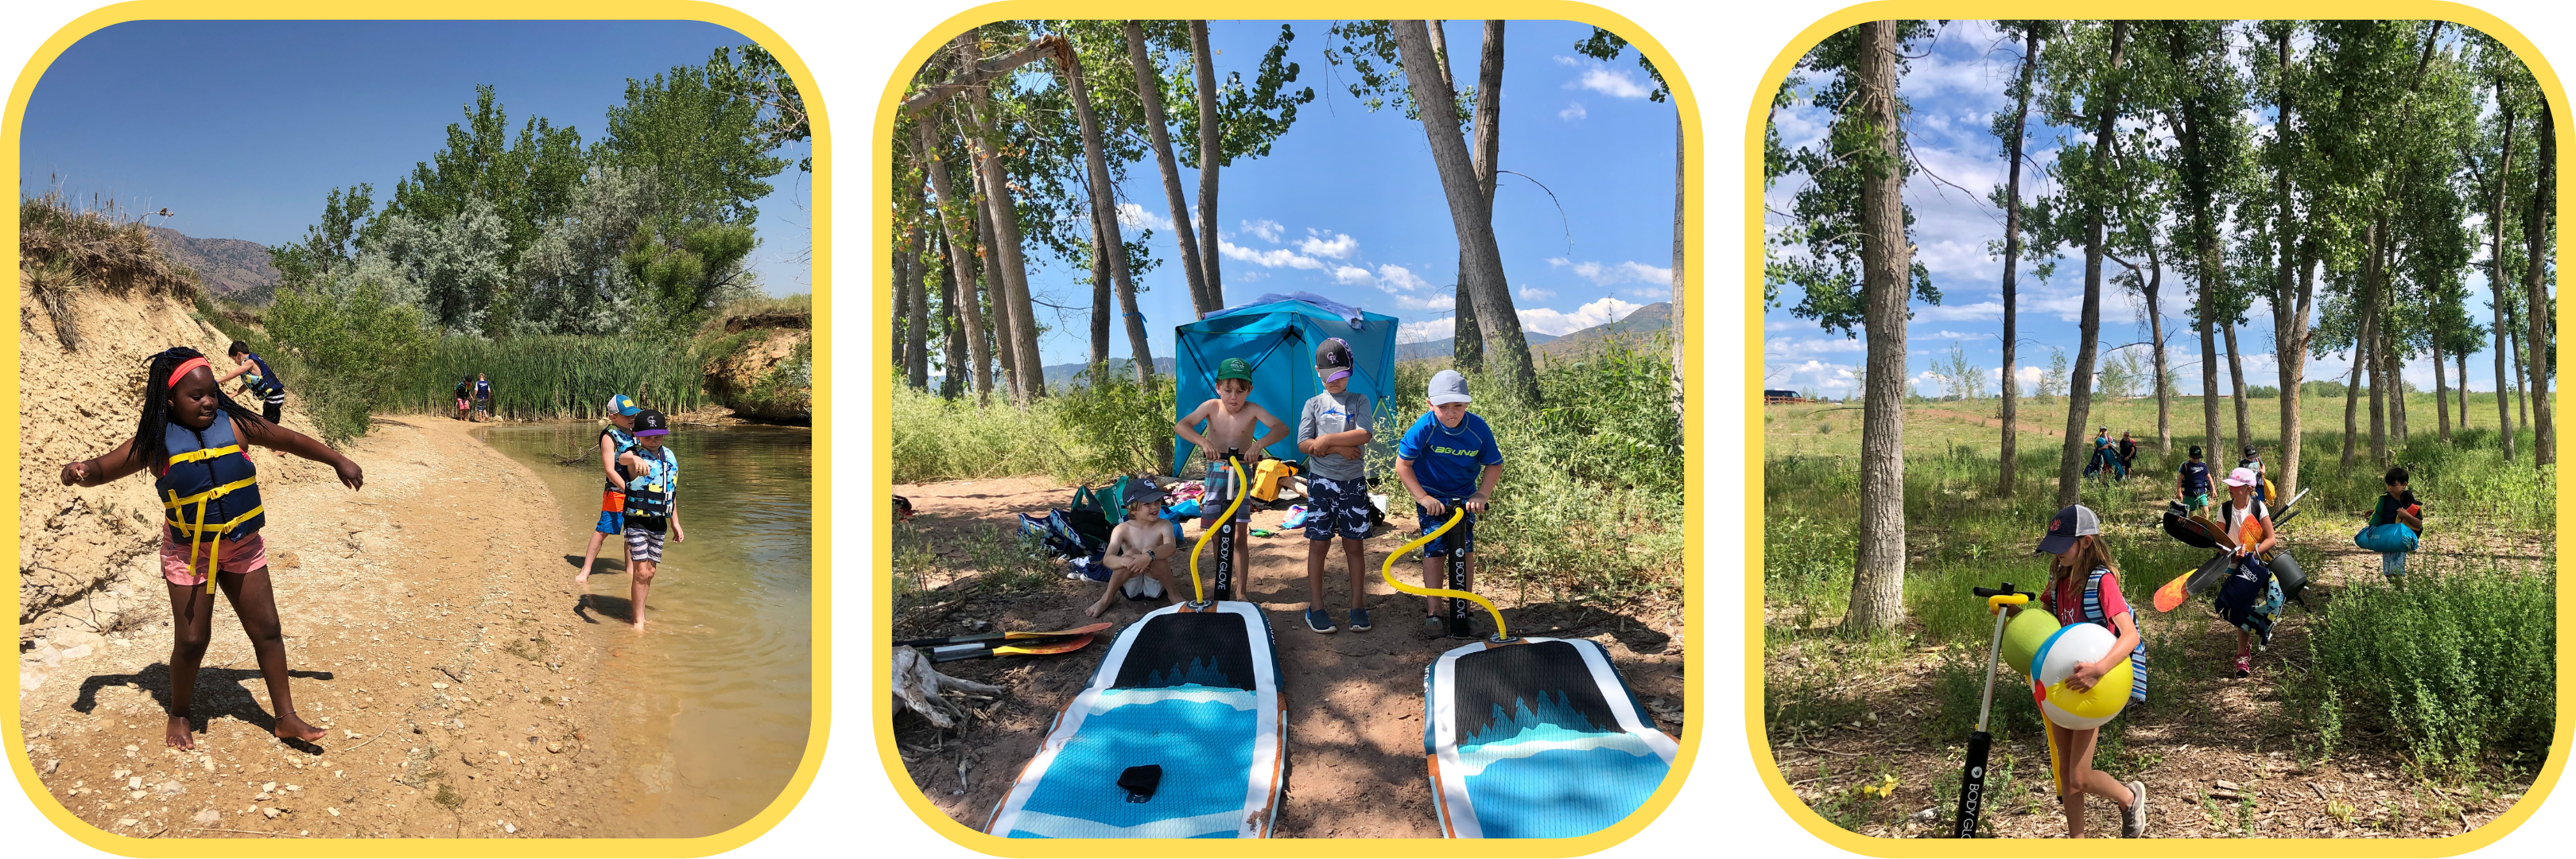 denver-tour-club-summer-day-camp-kids-outdoor-adventures-2021.png